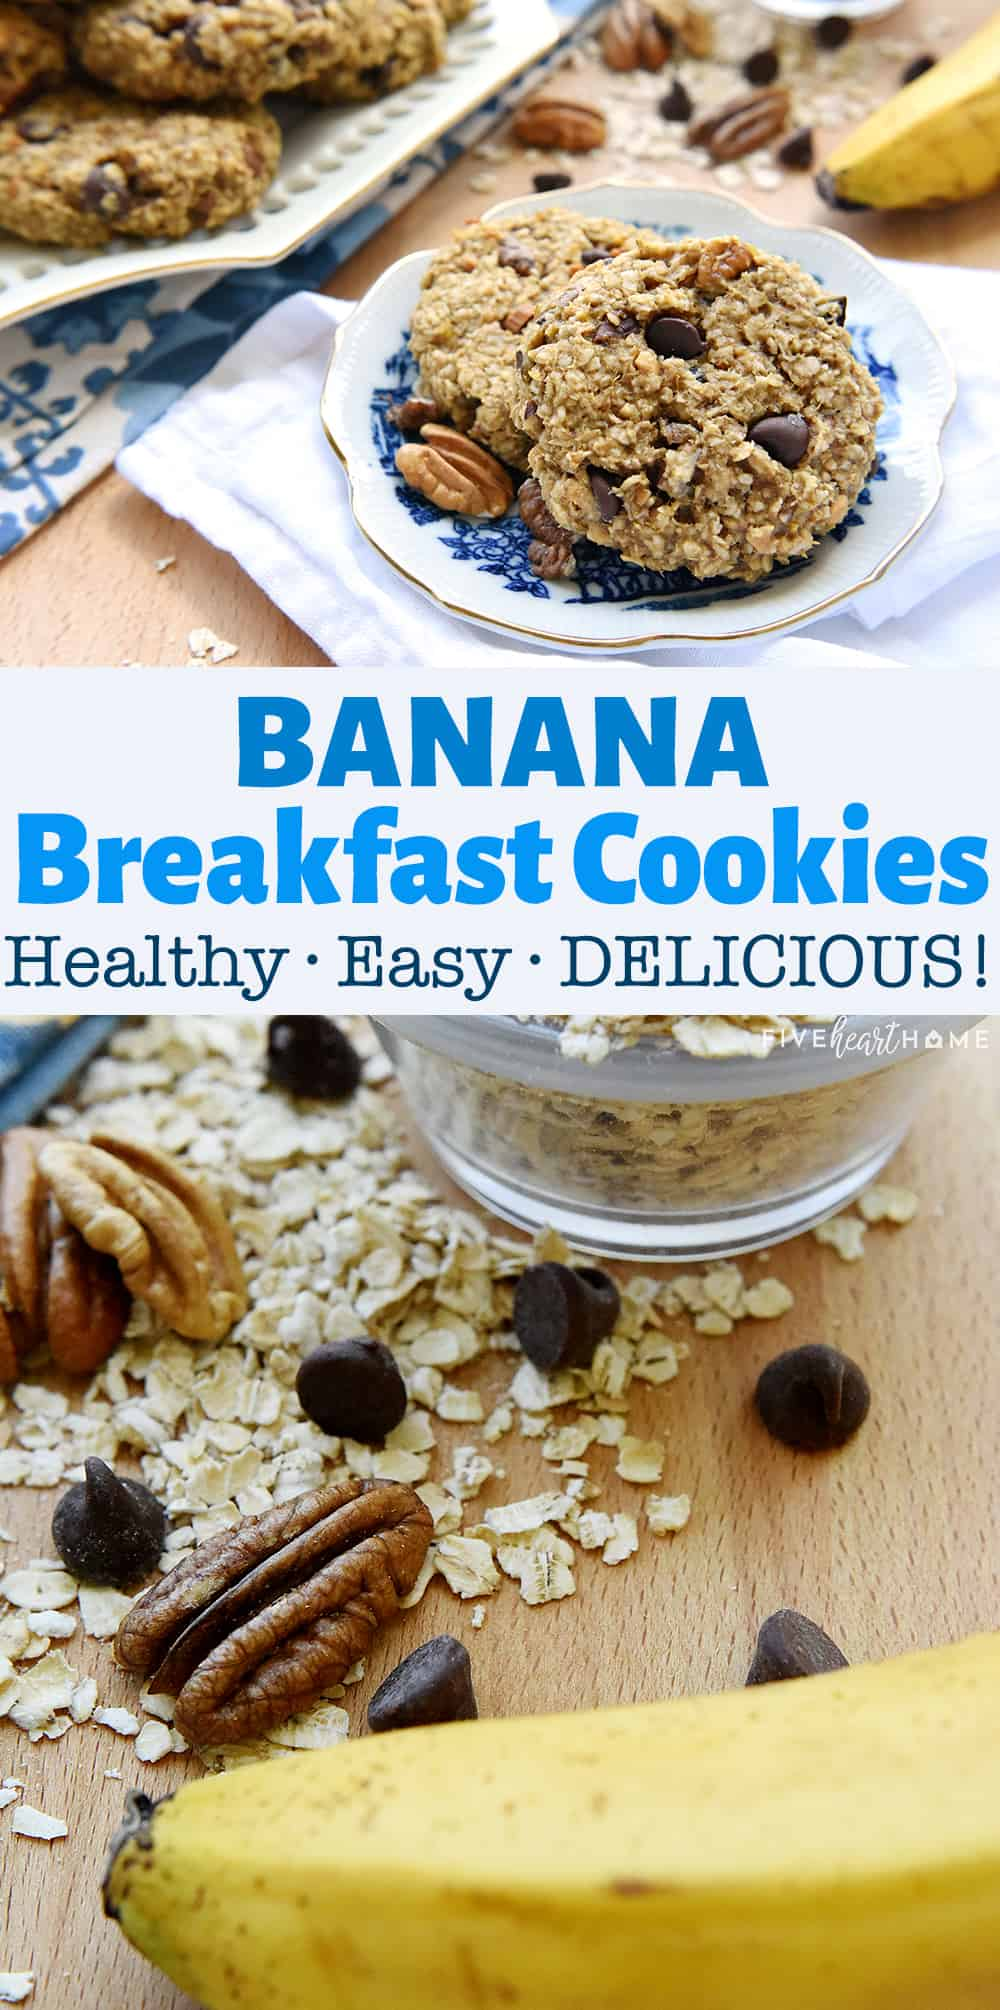 Banana Breakfast Cookies ~ these healthy banana oatmeal cookies make a wholesome, yummy breakfast on-the-go that's naturally sweetened, gluten-free, and perfect for using up ripe bananas! | FiveHeartHome.com via @fivehearthome